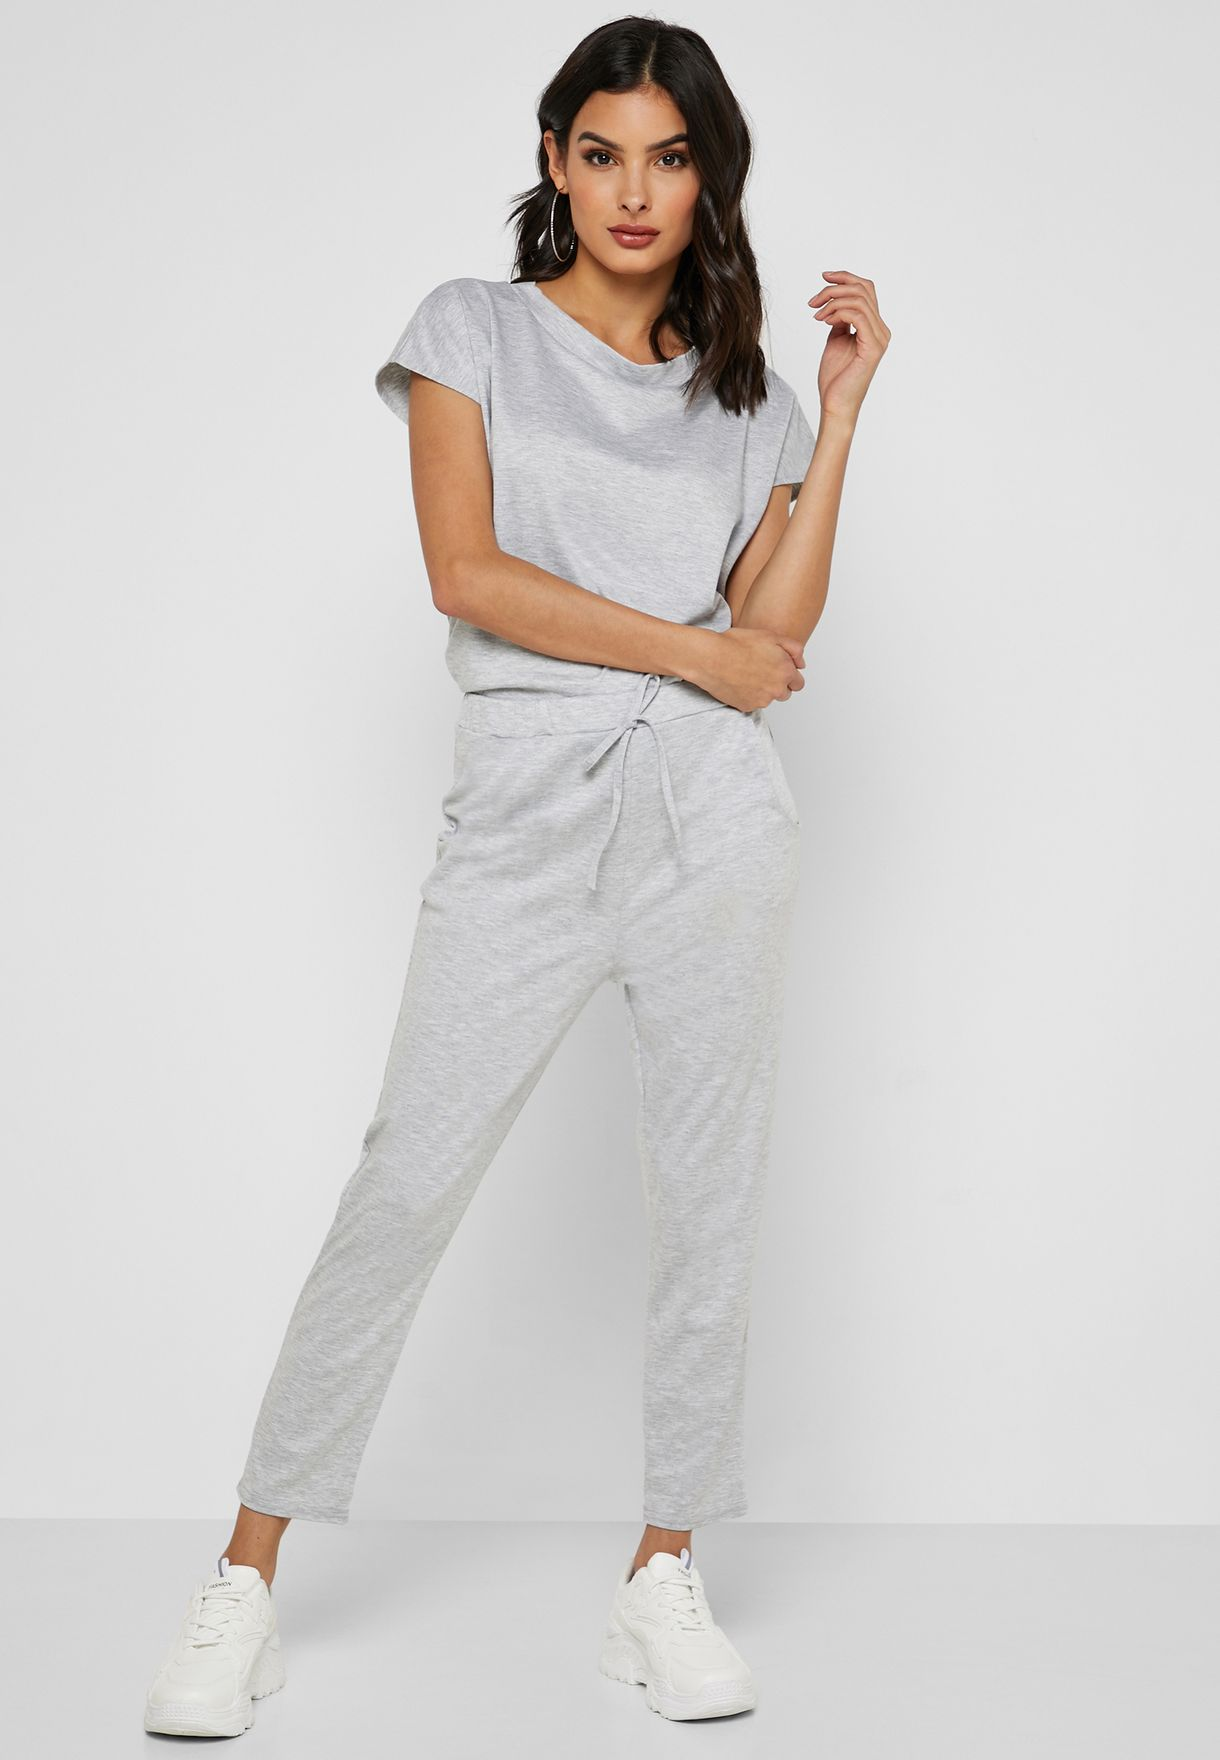 T-Shirt Drawstring Pants Set